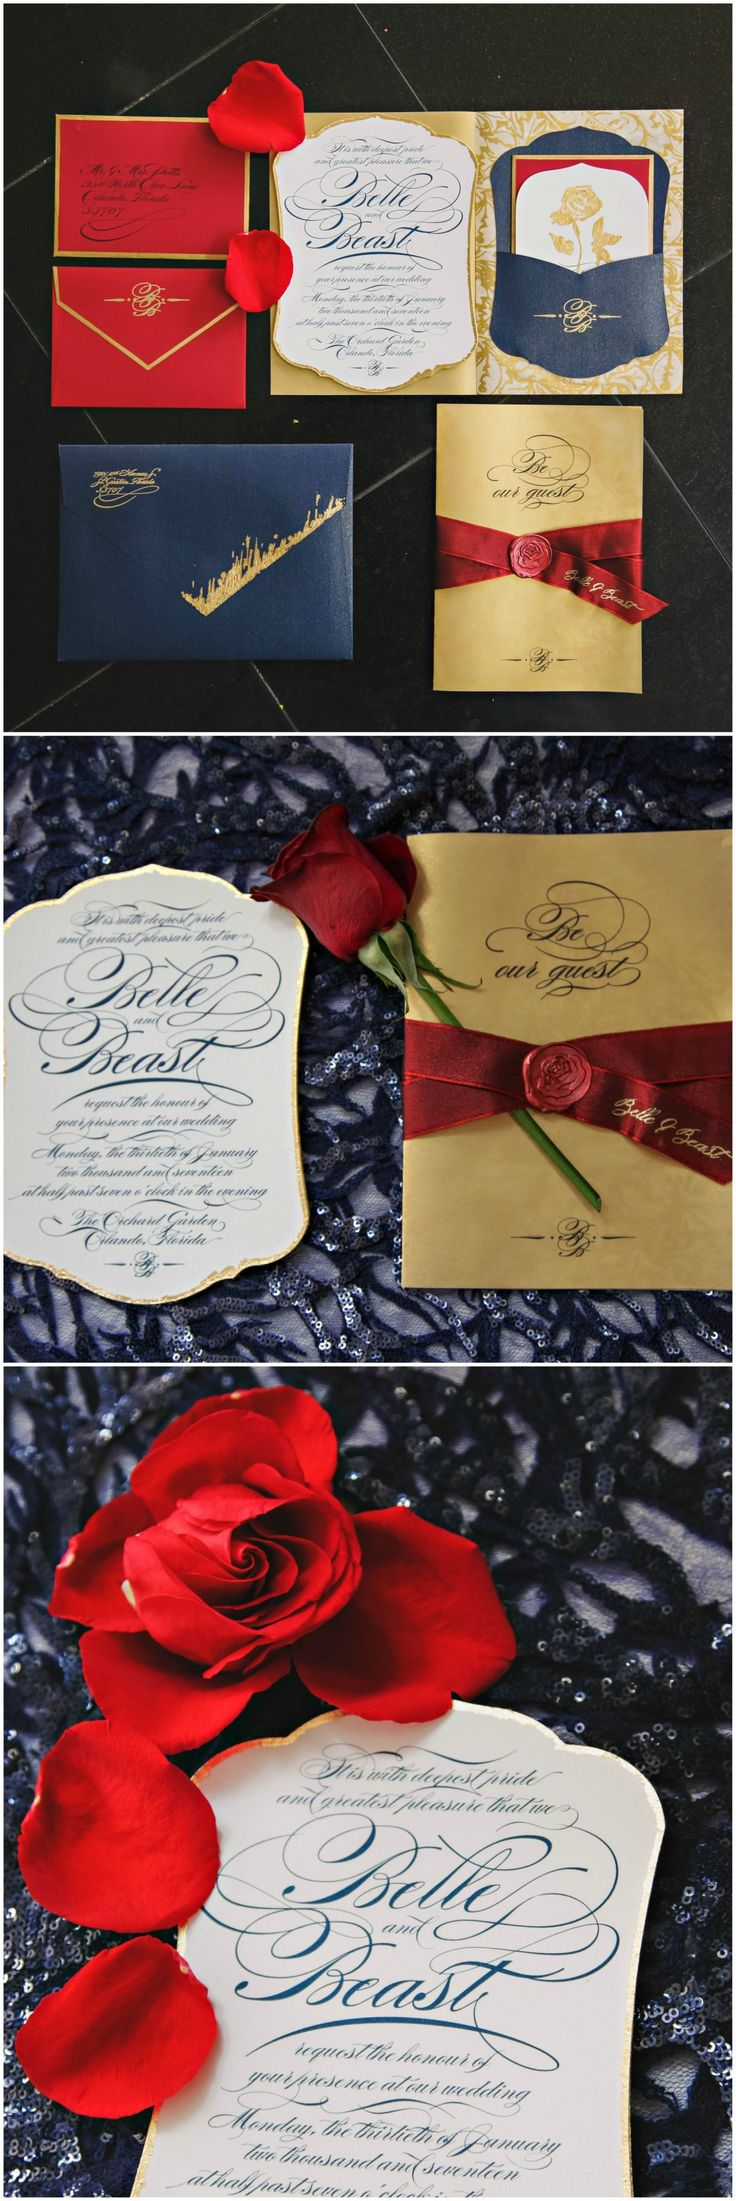 1545 best Wedding Invitation images on Pinterest | Bridal ...